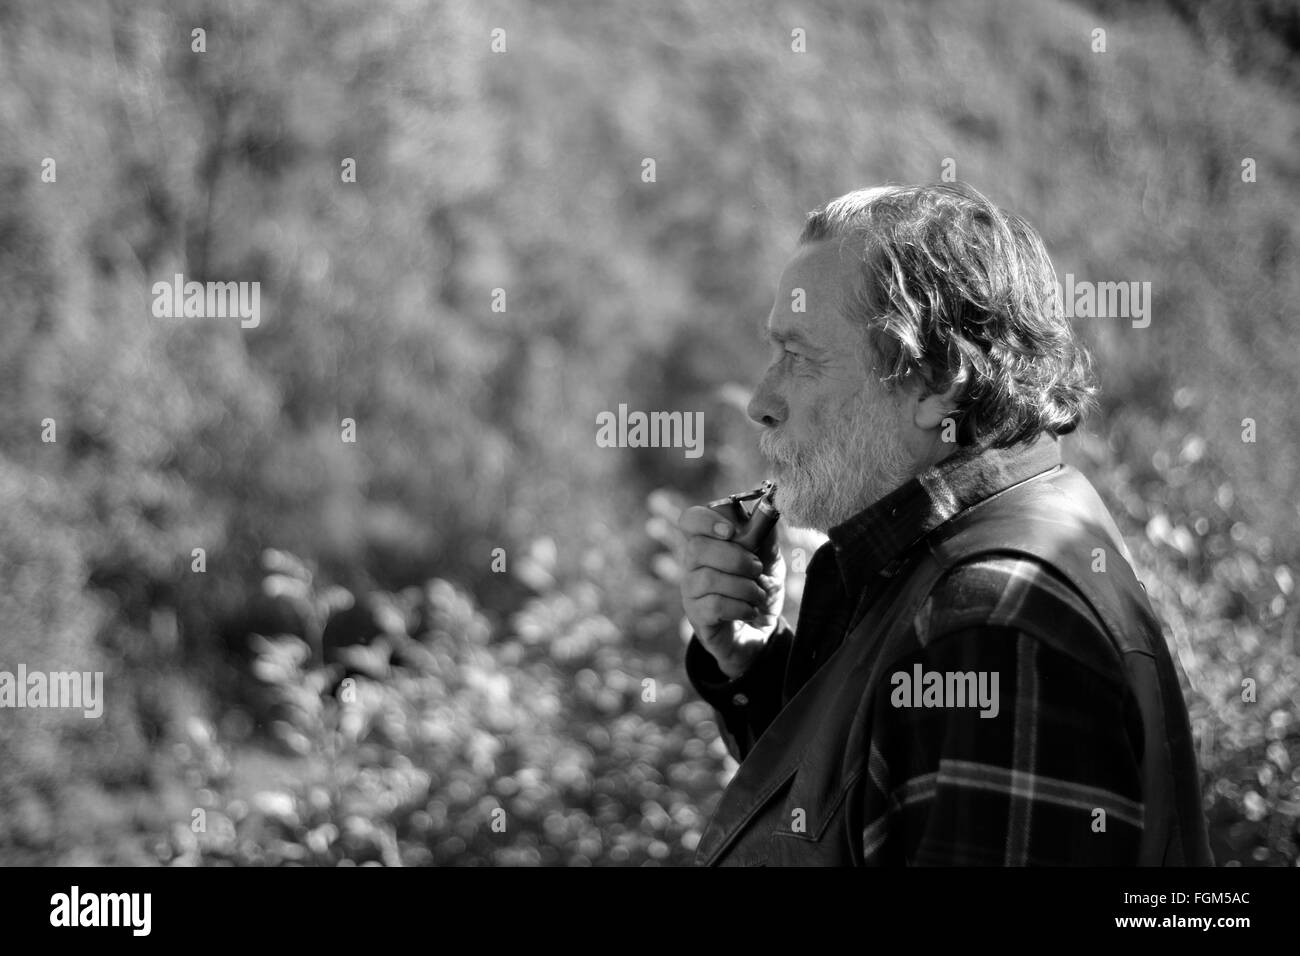 Old man smoking his pipe, the addiction of smoking is a life long addiction every hour of every day. Can't run from - Stock Image